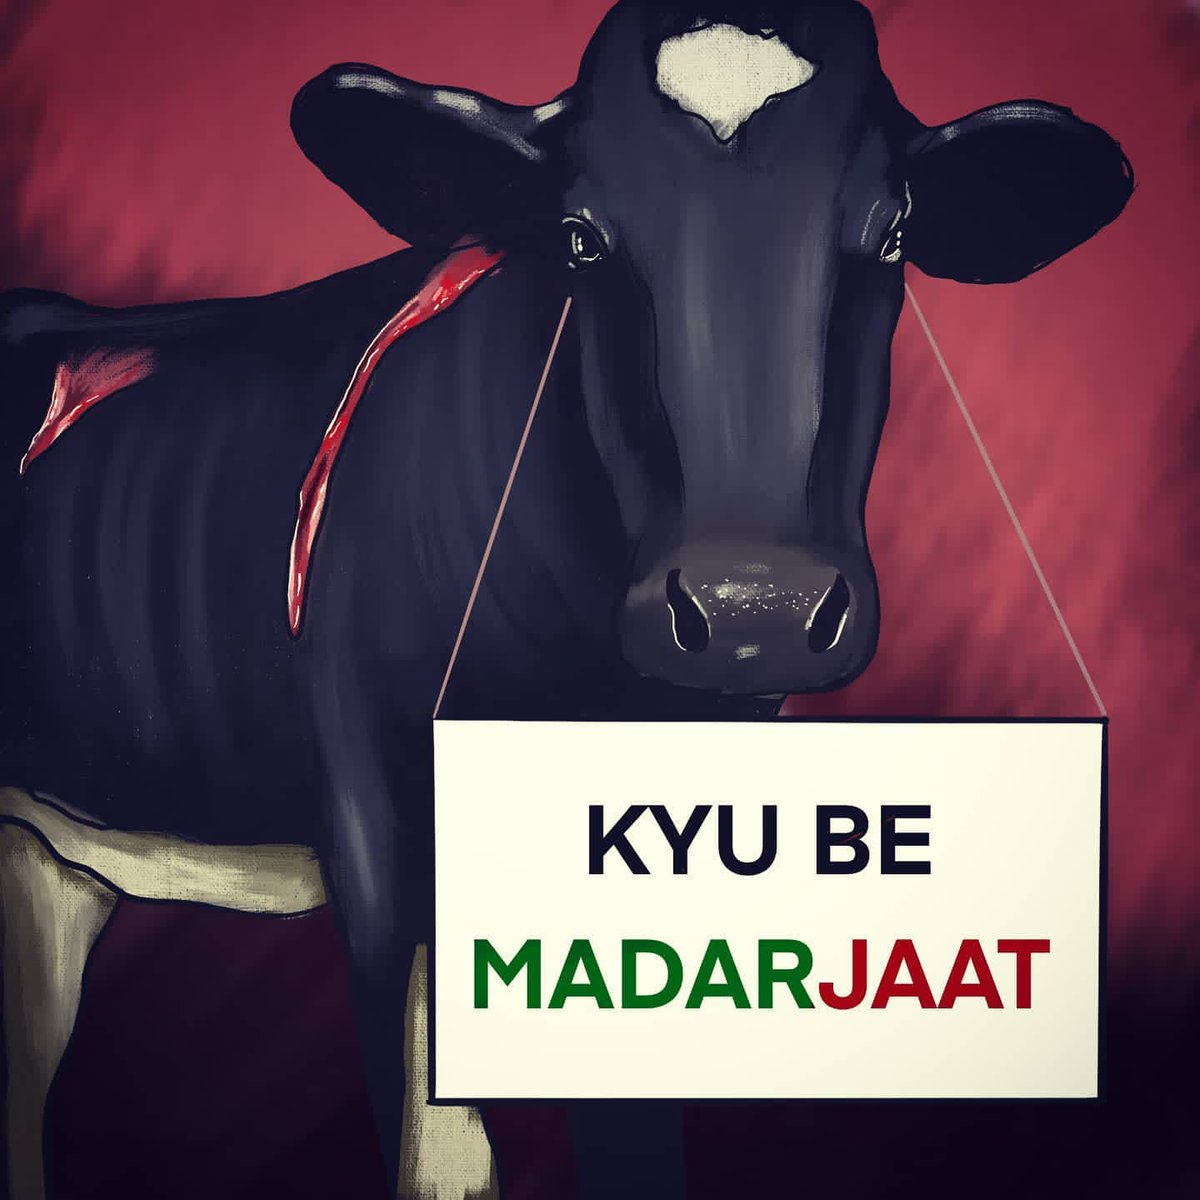 KYU BE MADAR JAAT! We have seen the massive slaughter of cows in Ahmedabad at Roopamati Mosque where 1,500kg of cow and Buffalo meat was illegal being sold. That video was soul shaking when police did a raid and saved many other cattles. #cow #slaughterhouses #greenhouse